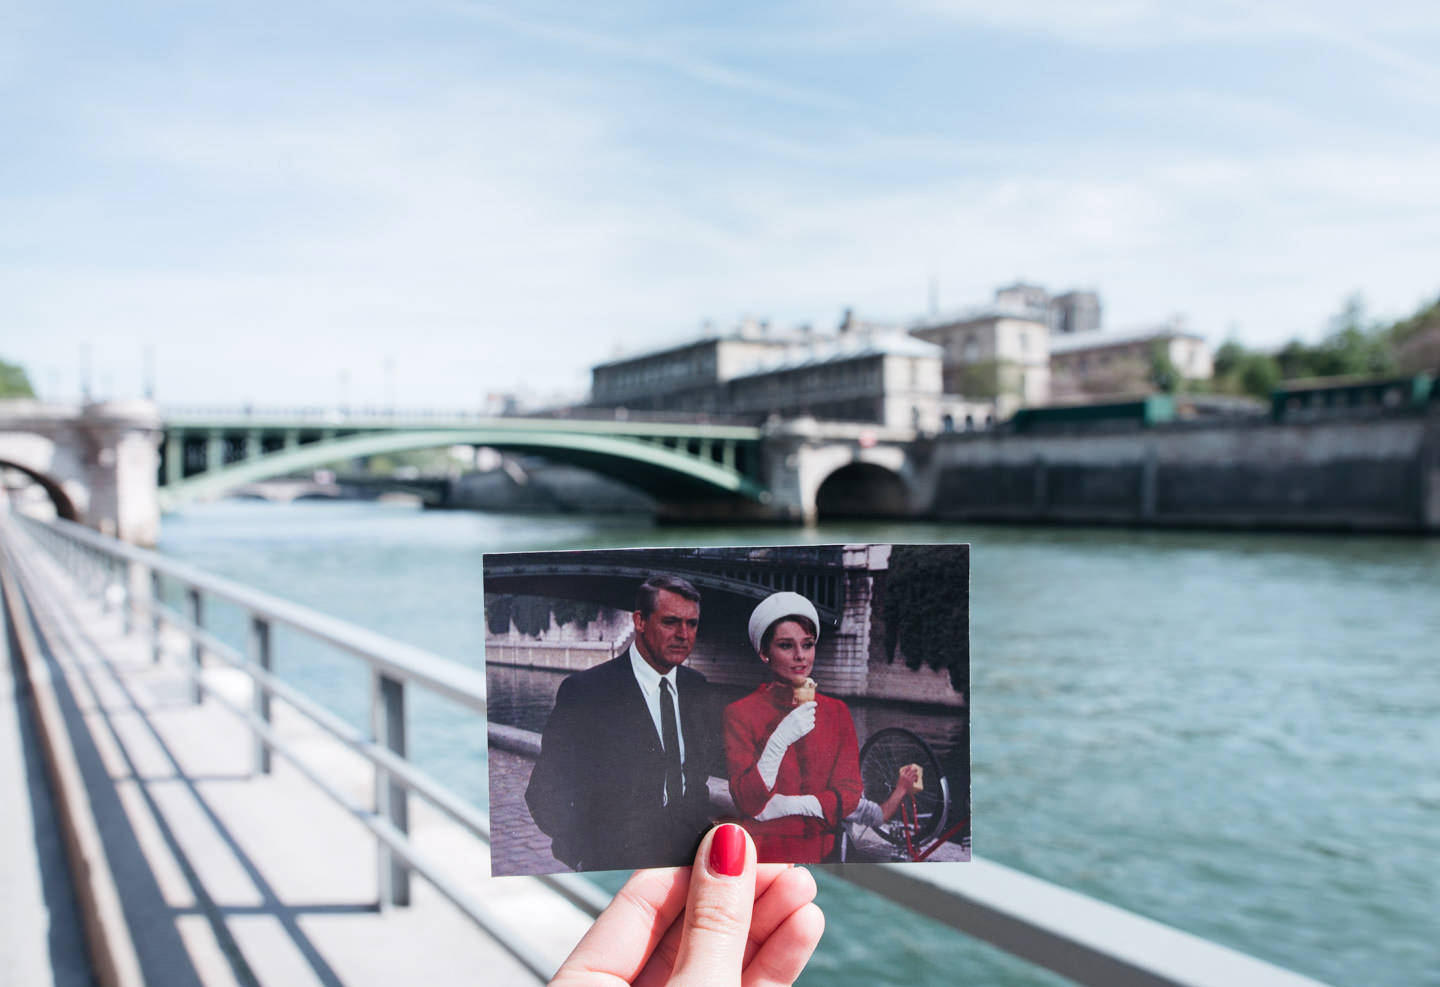 Blog-Mode-And-the-City-mon-paris-du-cinema-mastercard-3